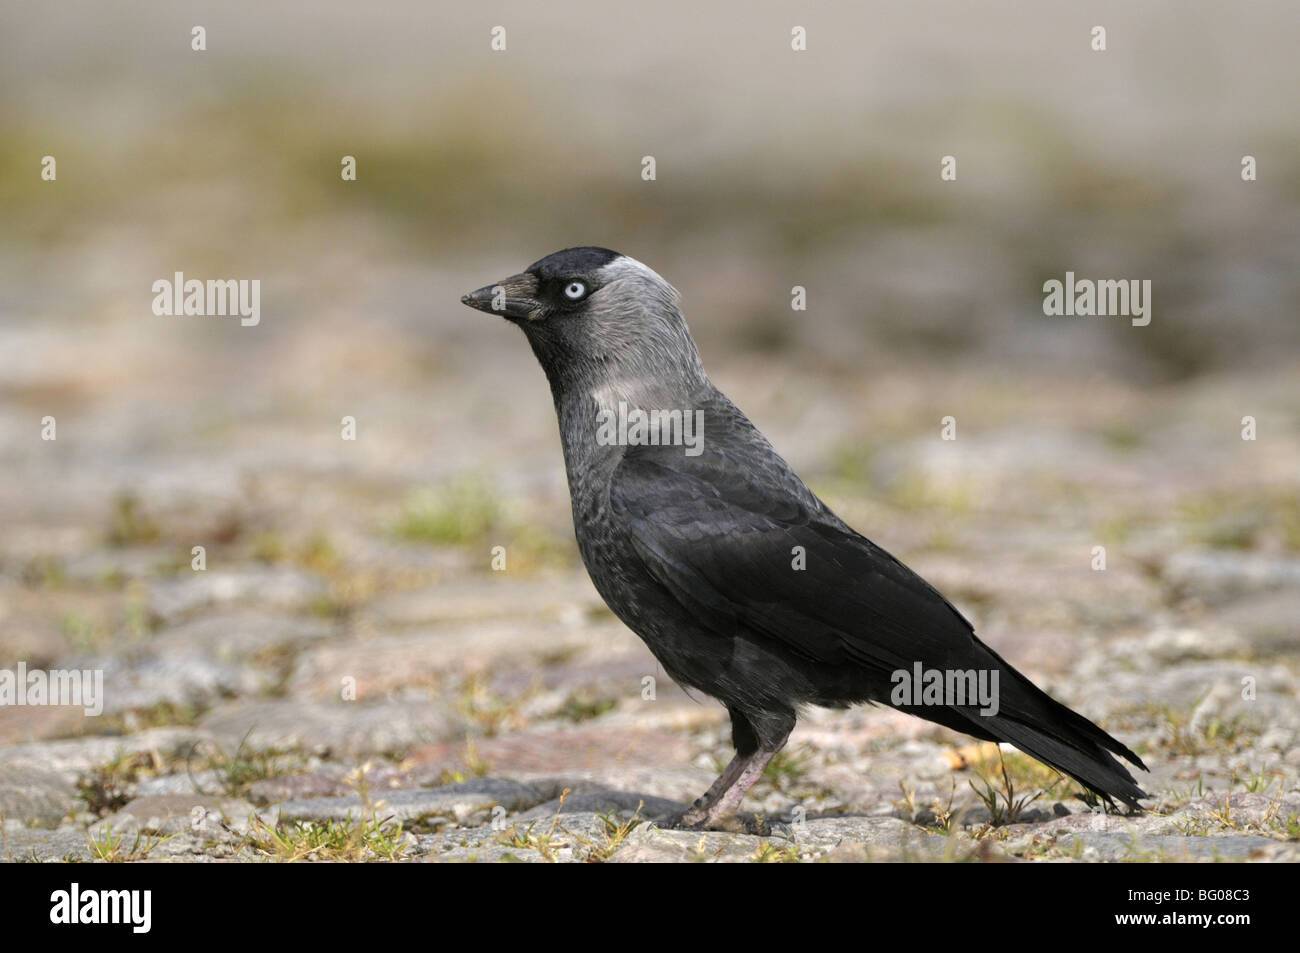 Jackdaw (Corvus monedula) standing on cobblestone pavement. - Stock Image